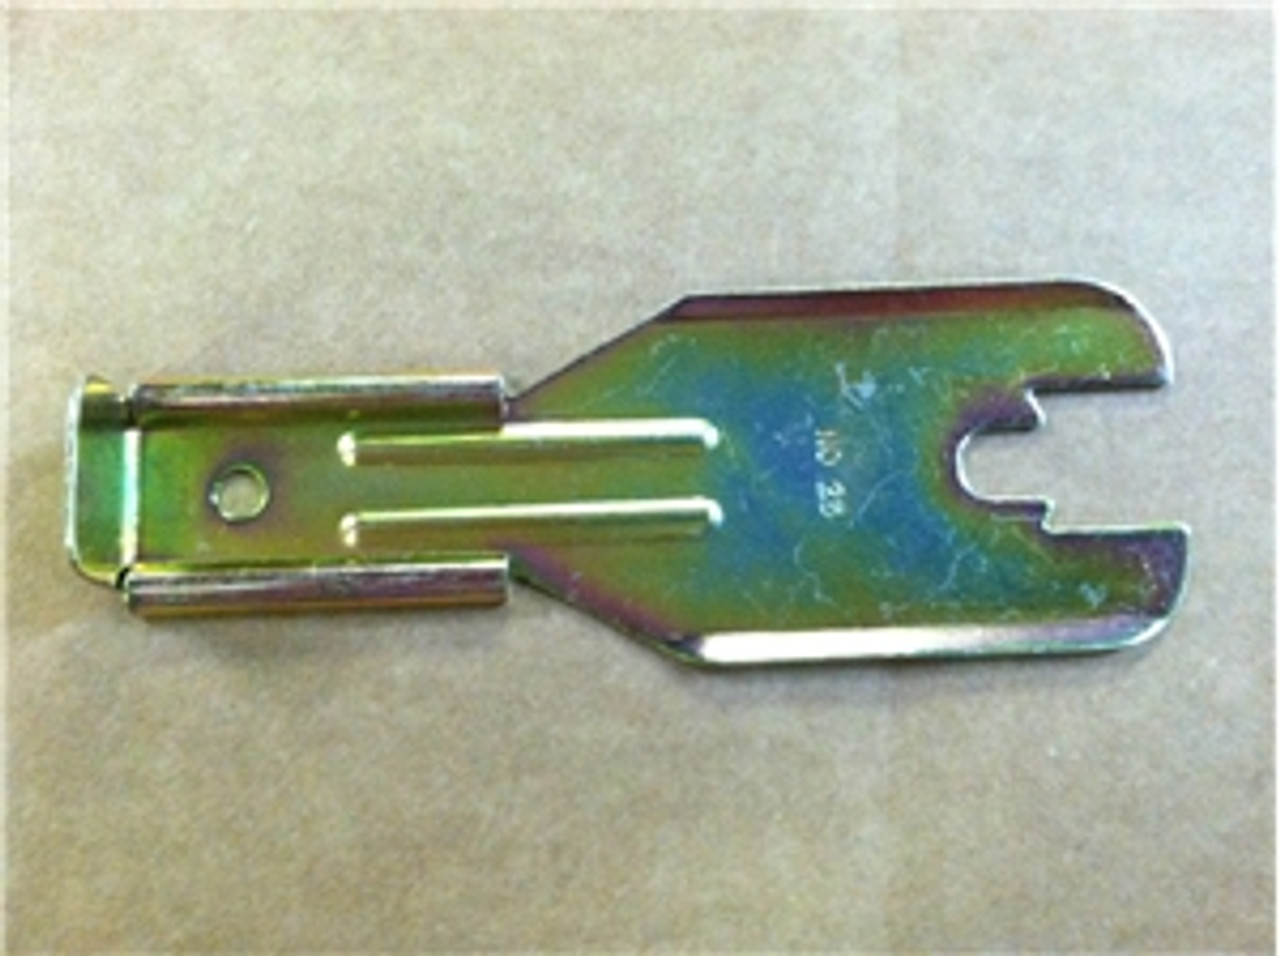 1964-72 Chevelle Or El Camino Inside Handle Removal Tool (each)